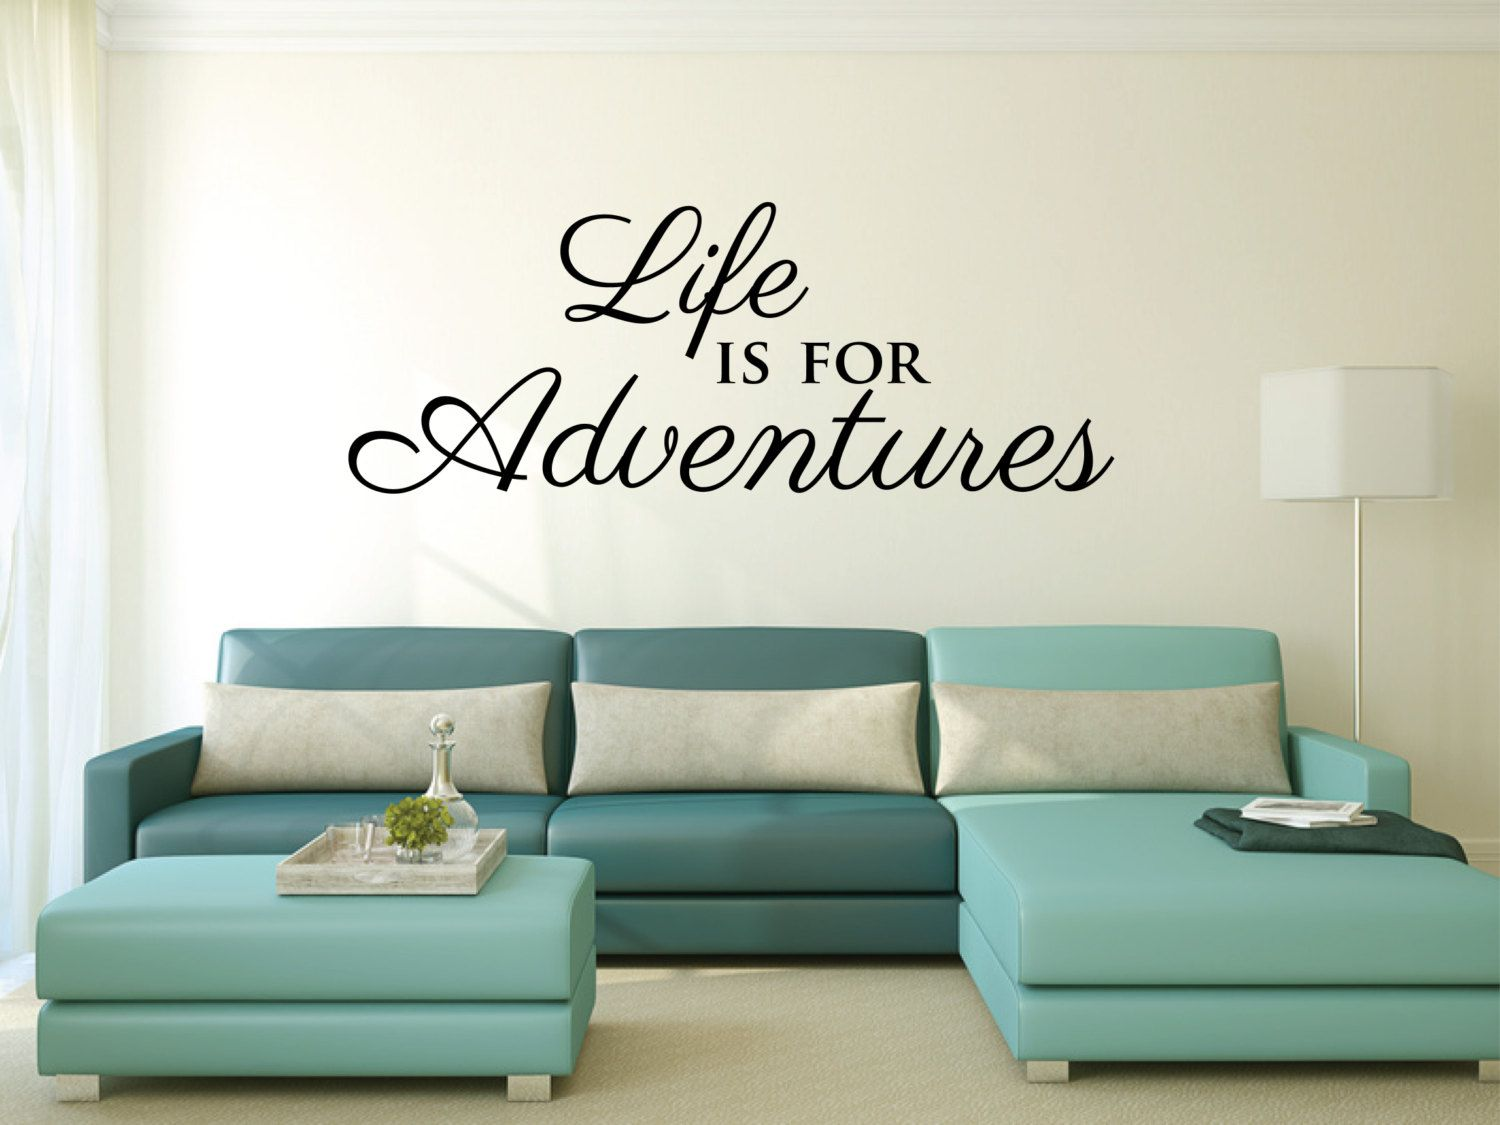 Wall Sticker Life Is For Adventures Motivational Inspirational